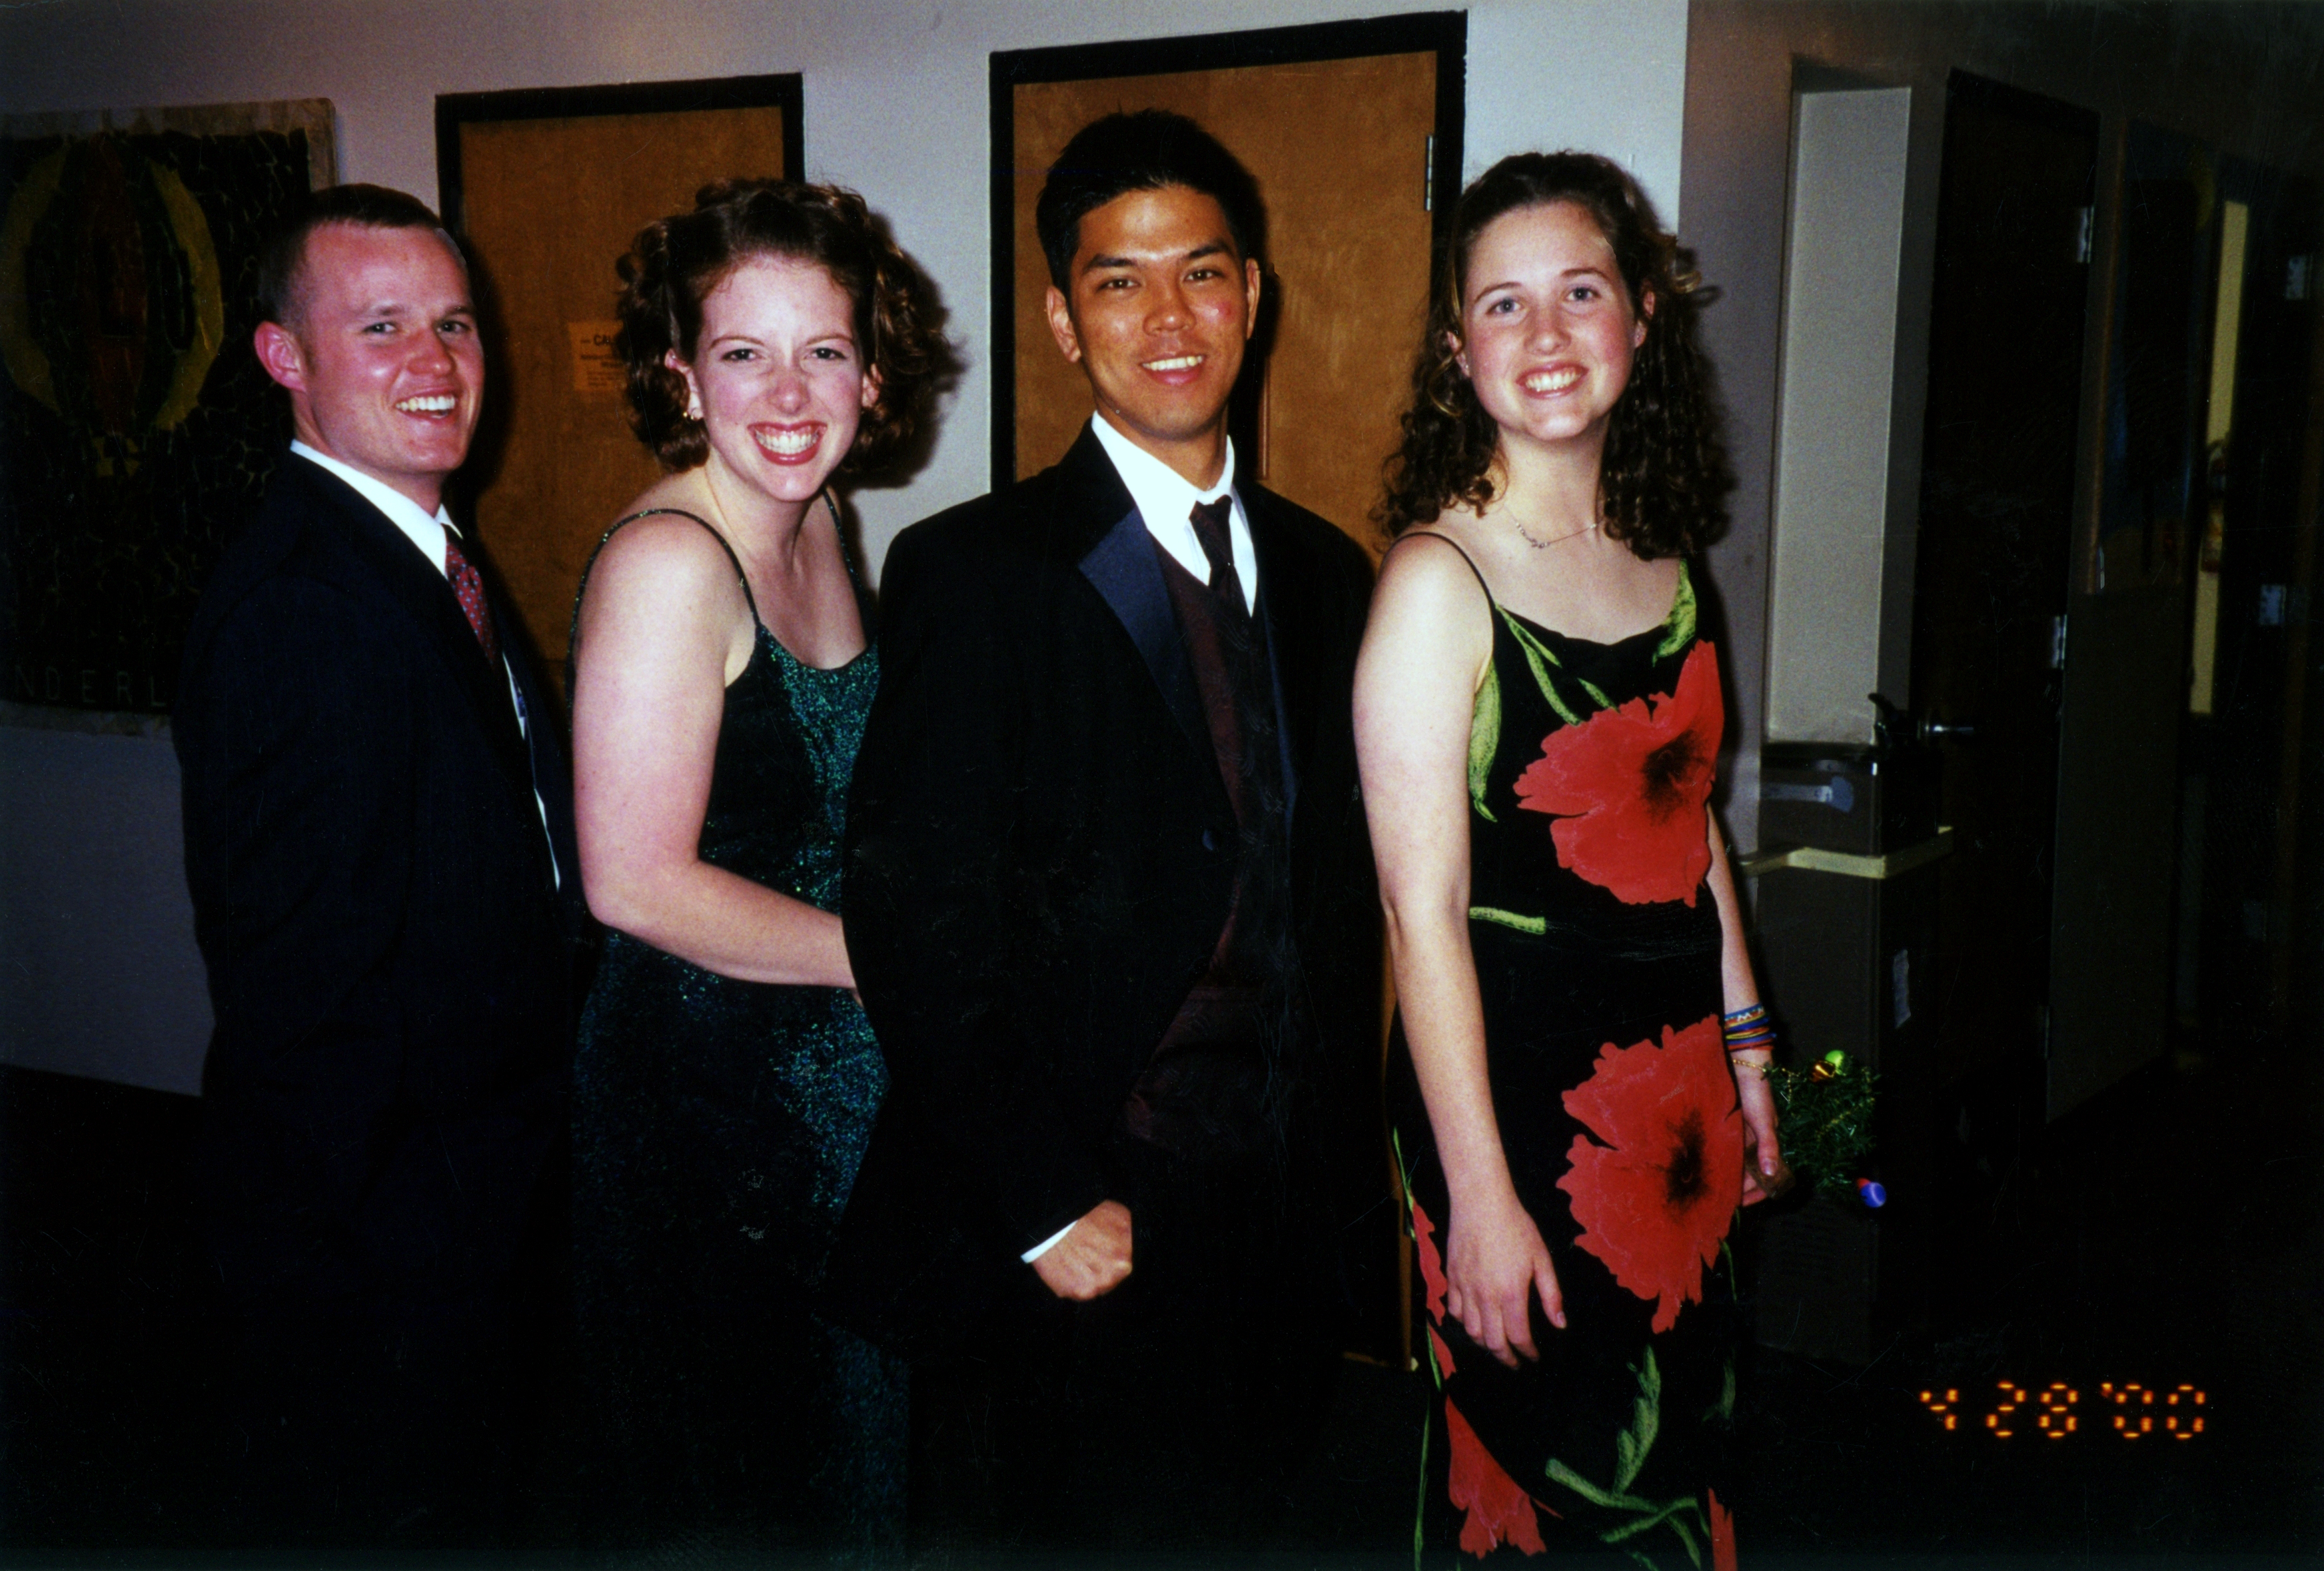 Proof of friendship: Doug, Cara, Michael & Holly (2000).